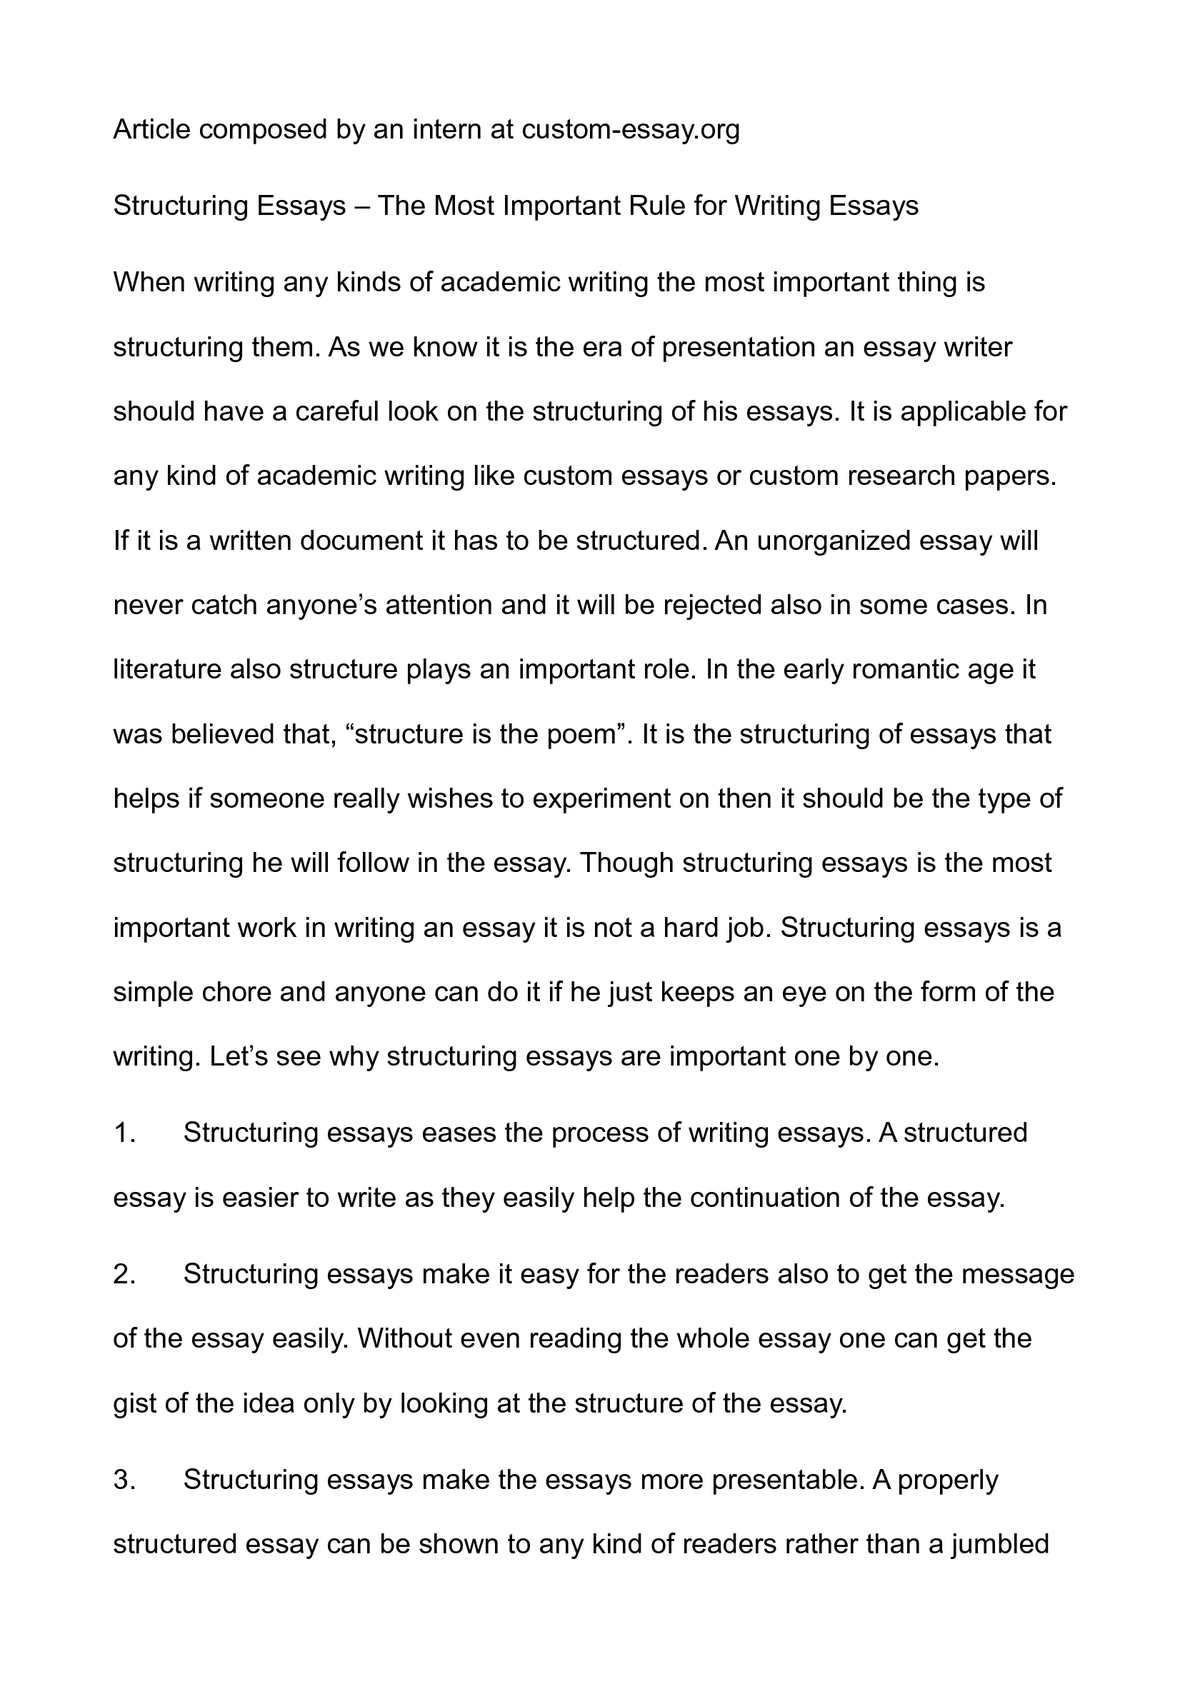 Essay Writing Examples English Calamo  Structuring Essays  The Most Important Rule For Writing Essays Essay On Science And Technology also Essay Health Calamo  Structuring Essays  The Most Important Rule For Writing  Writing Essay Papers